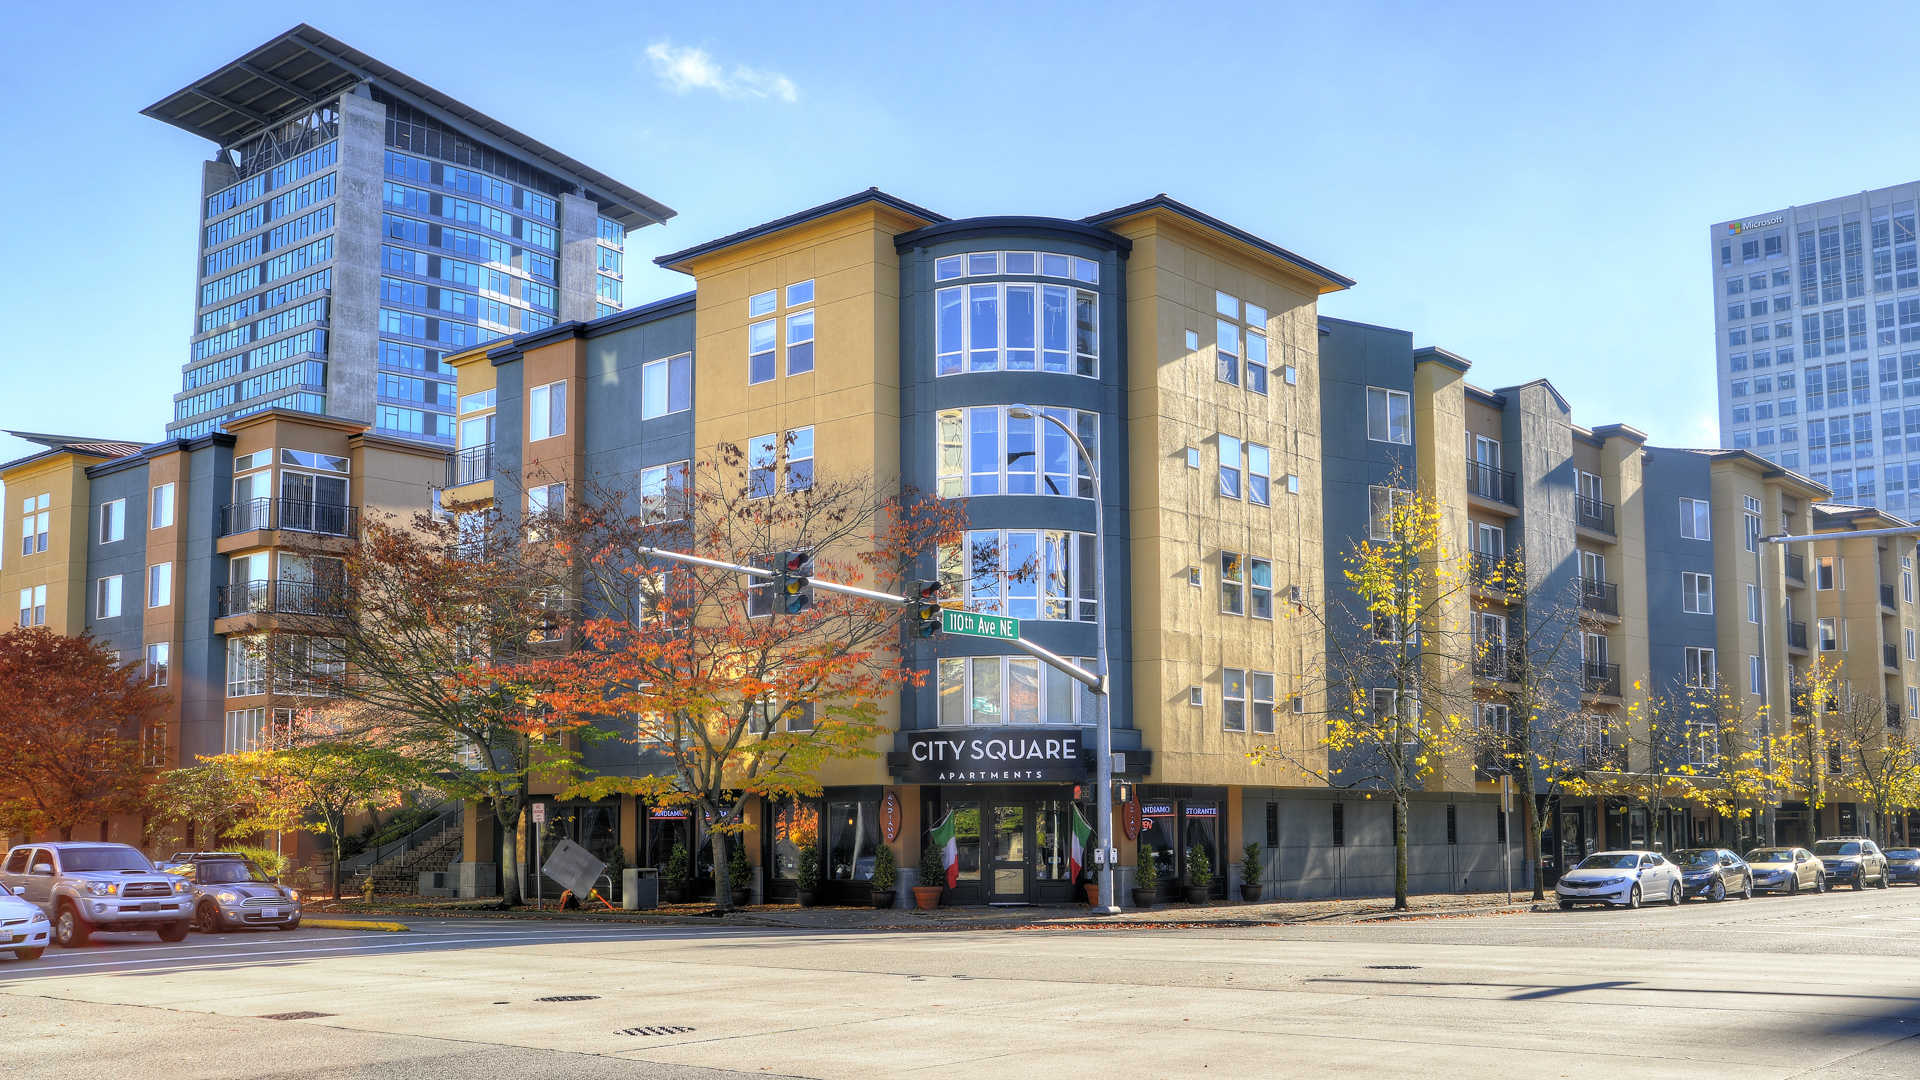 City square bellevue apartments in downtown bellevue 938 110th city square bellevue apartments in downtown bellevue 938 110th avenue northeast equityapartments solutioingenieria Images